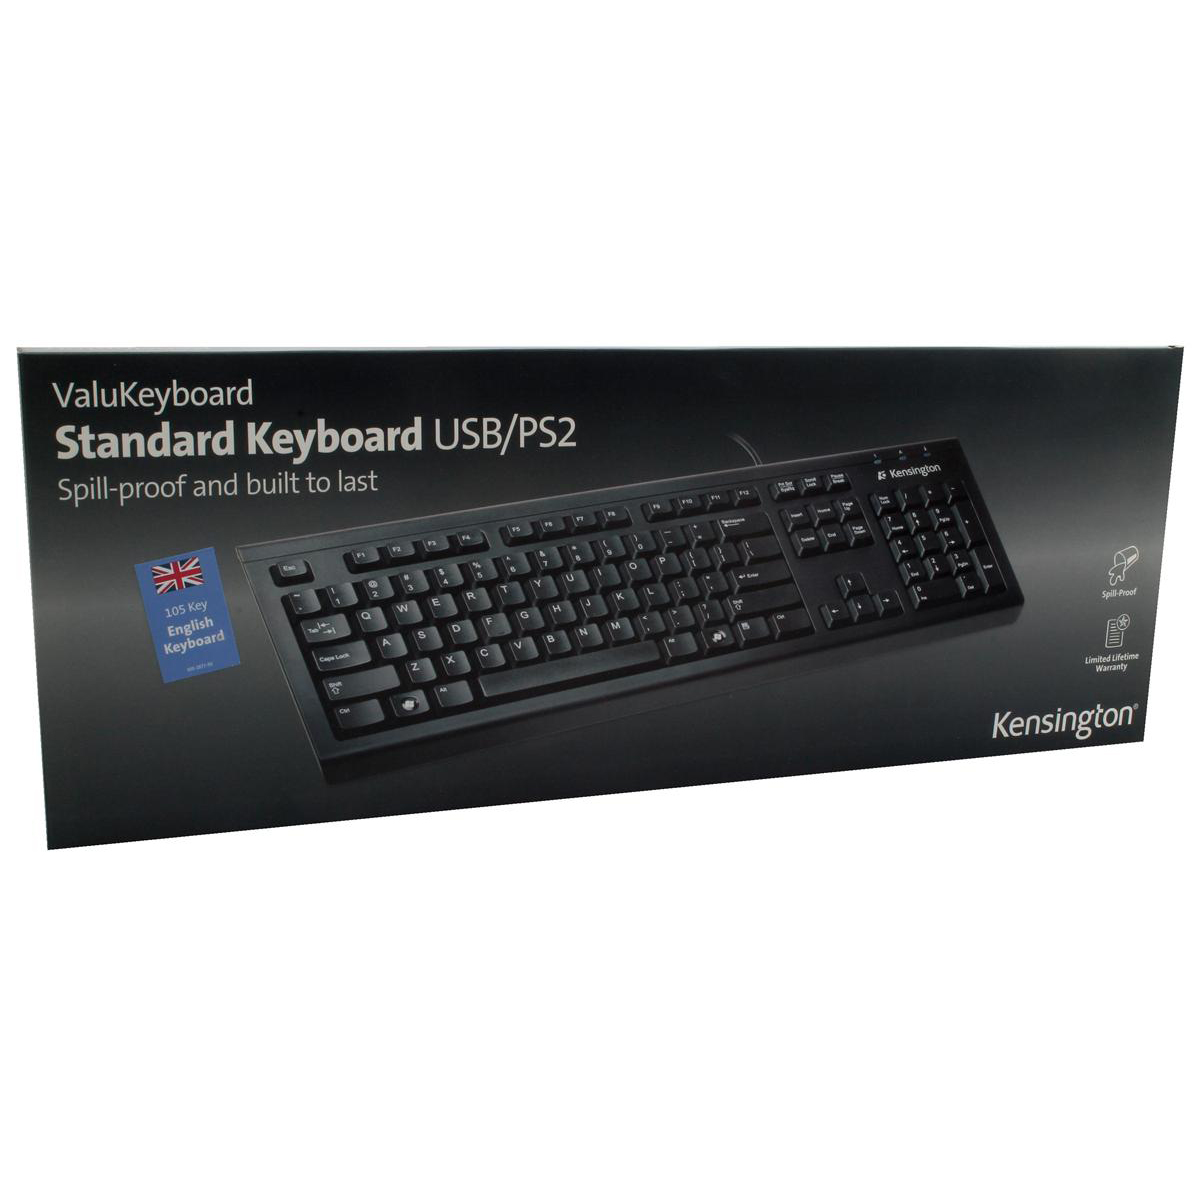 Kensington Value Keyboard USB Plug & Play Ref 1500109